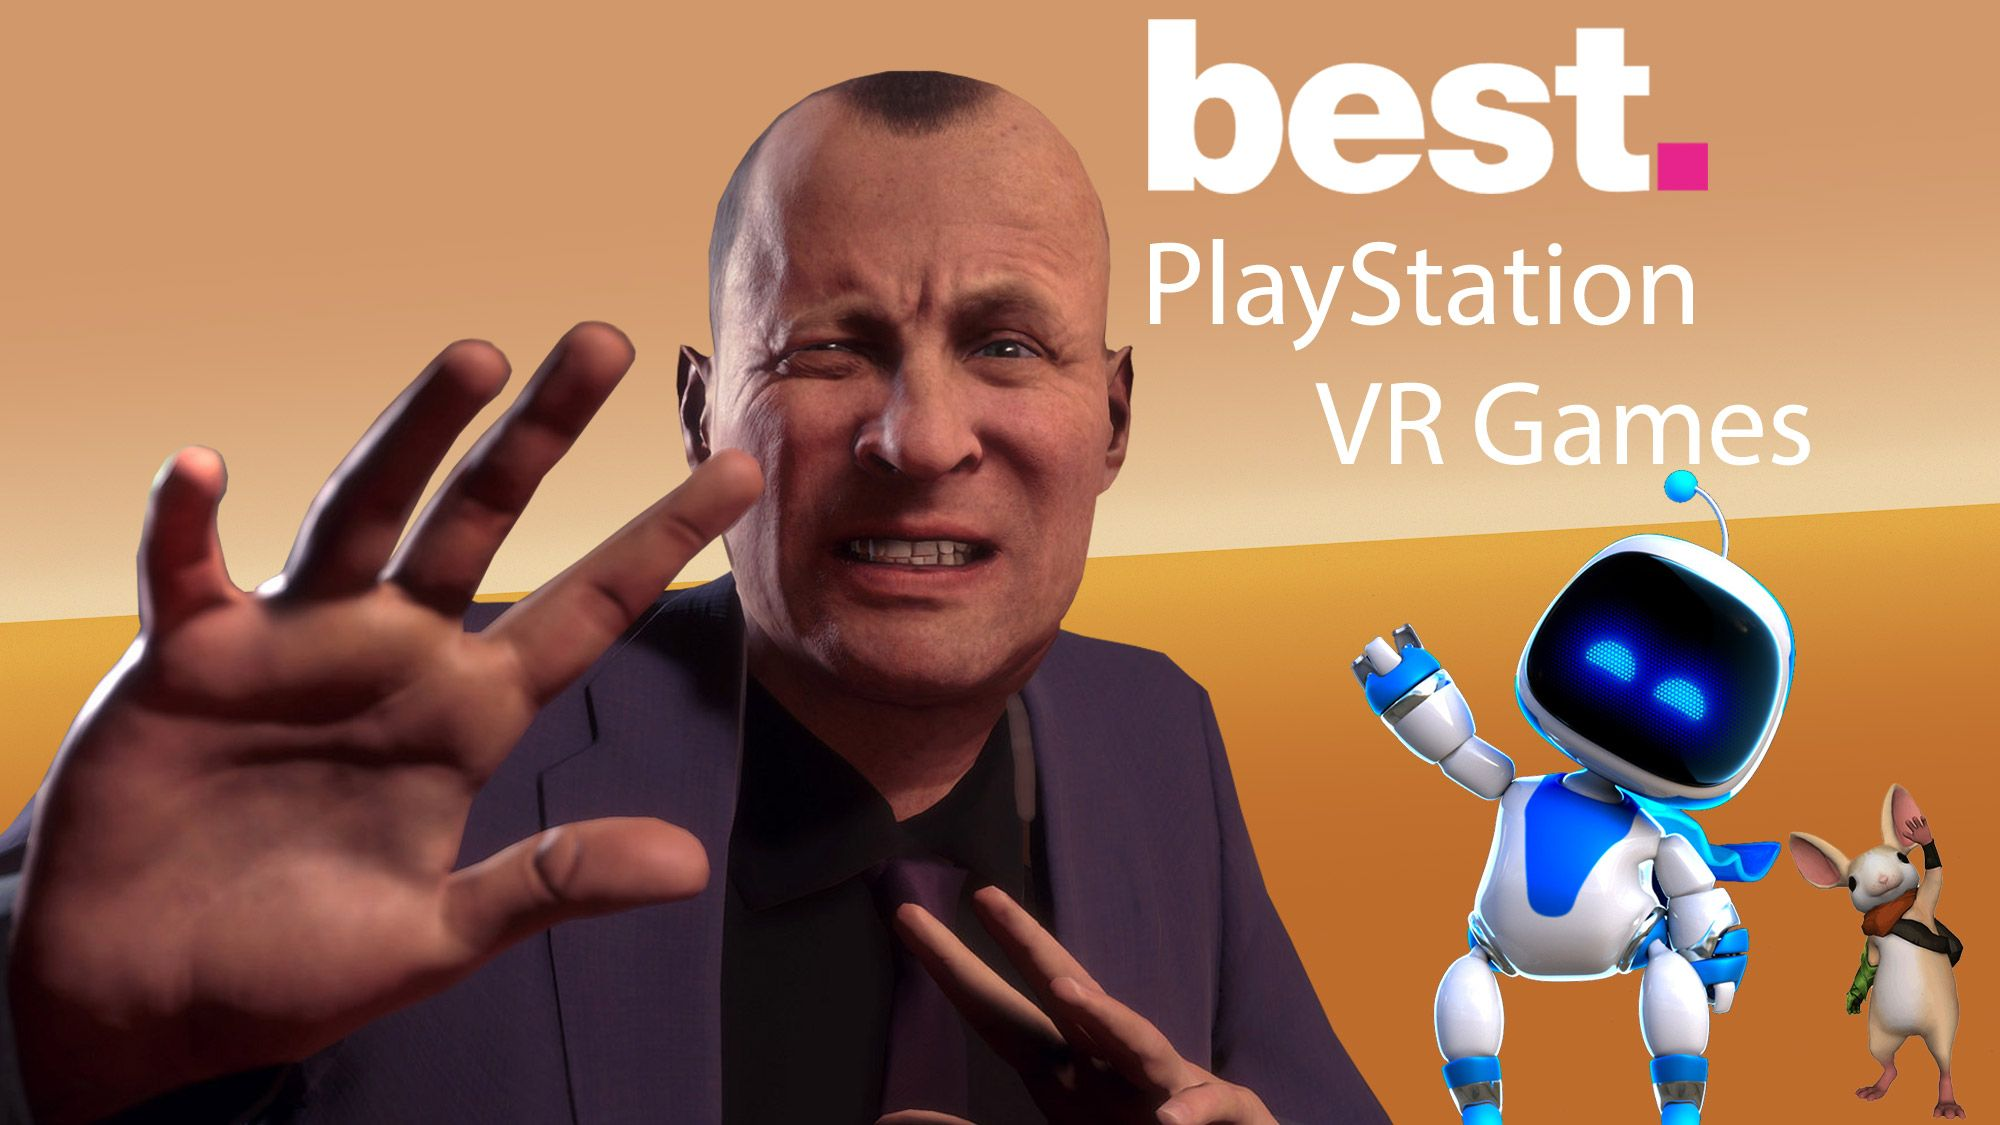 Best PlayStation VR games 2020 the PSVR games you need to